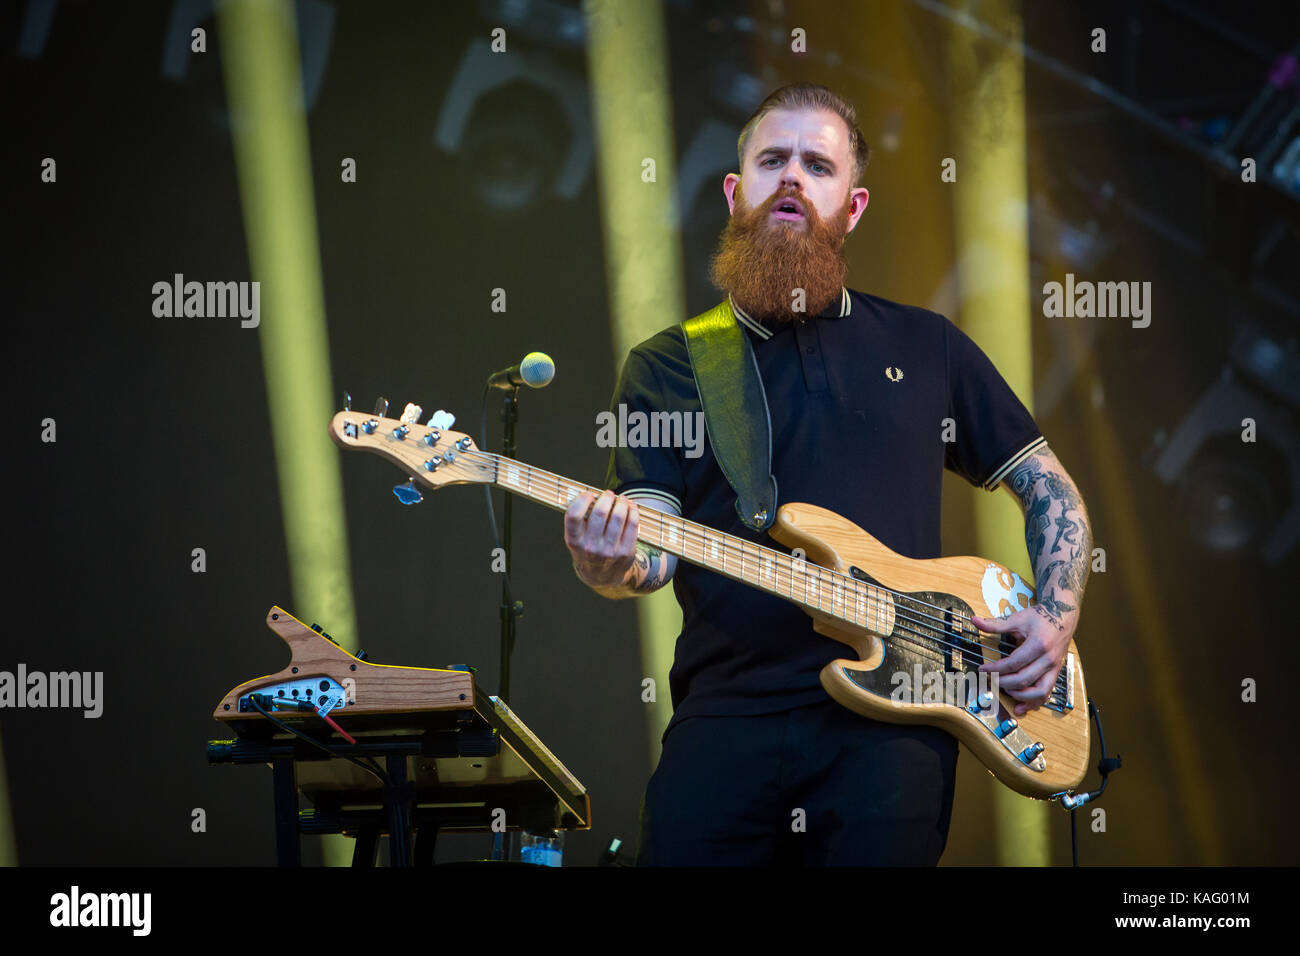 The English singer, songwriter and musician Sam Smith performs a live concert at the music festival Lollapalooza - Stock Image